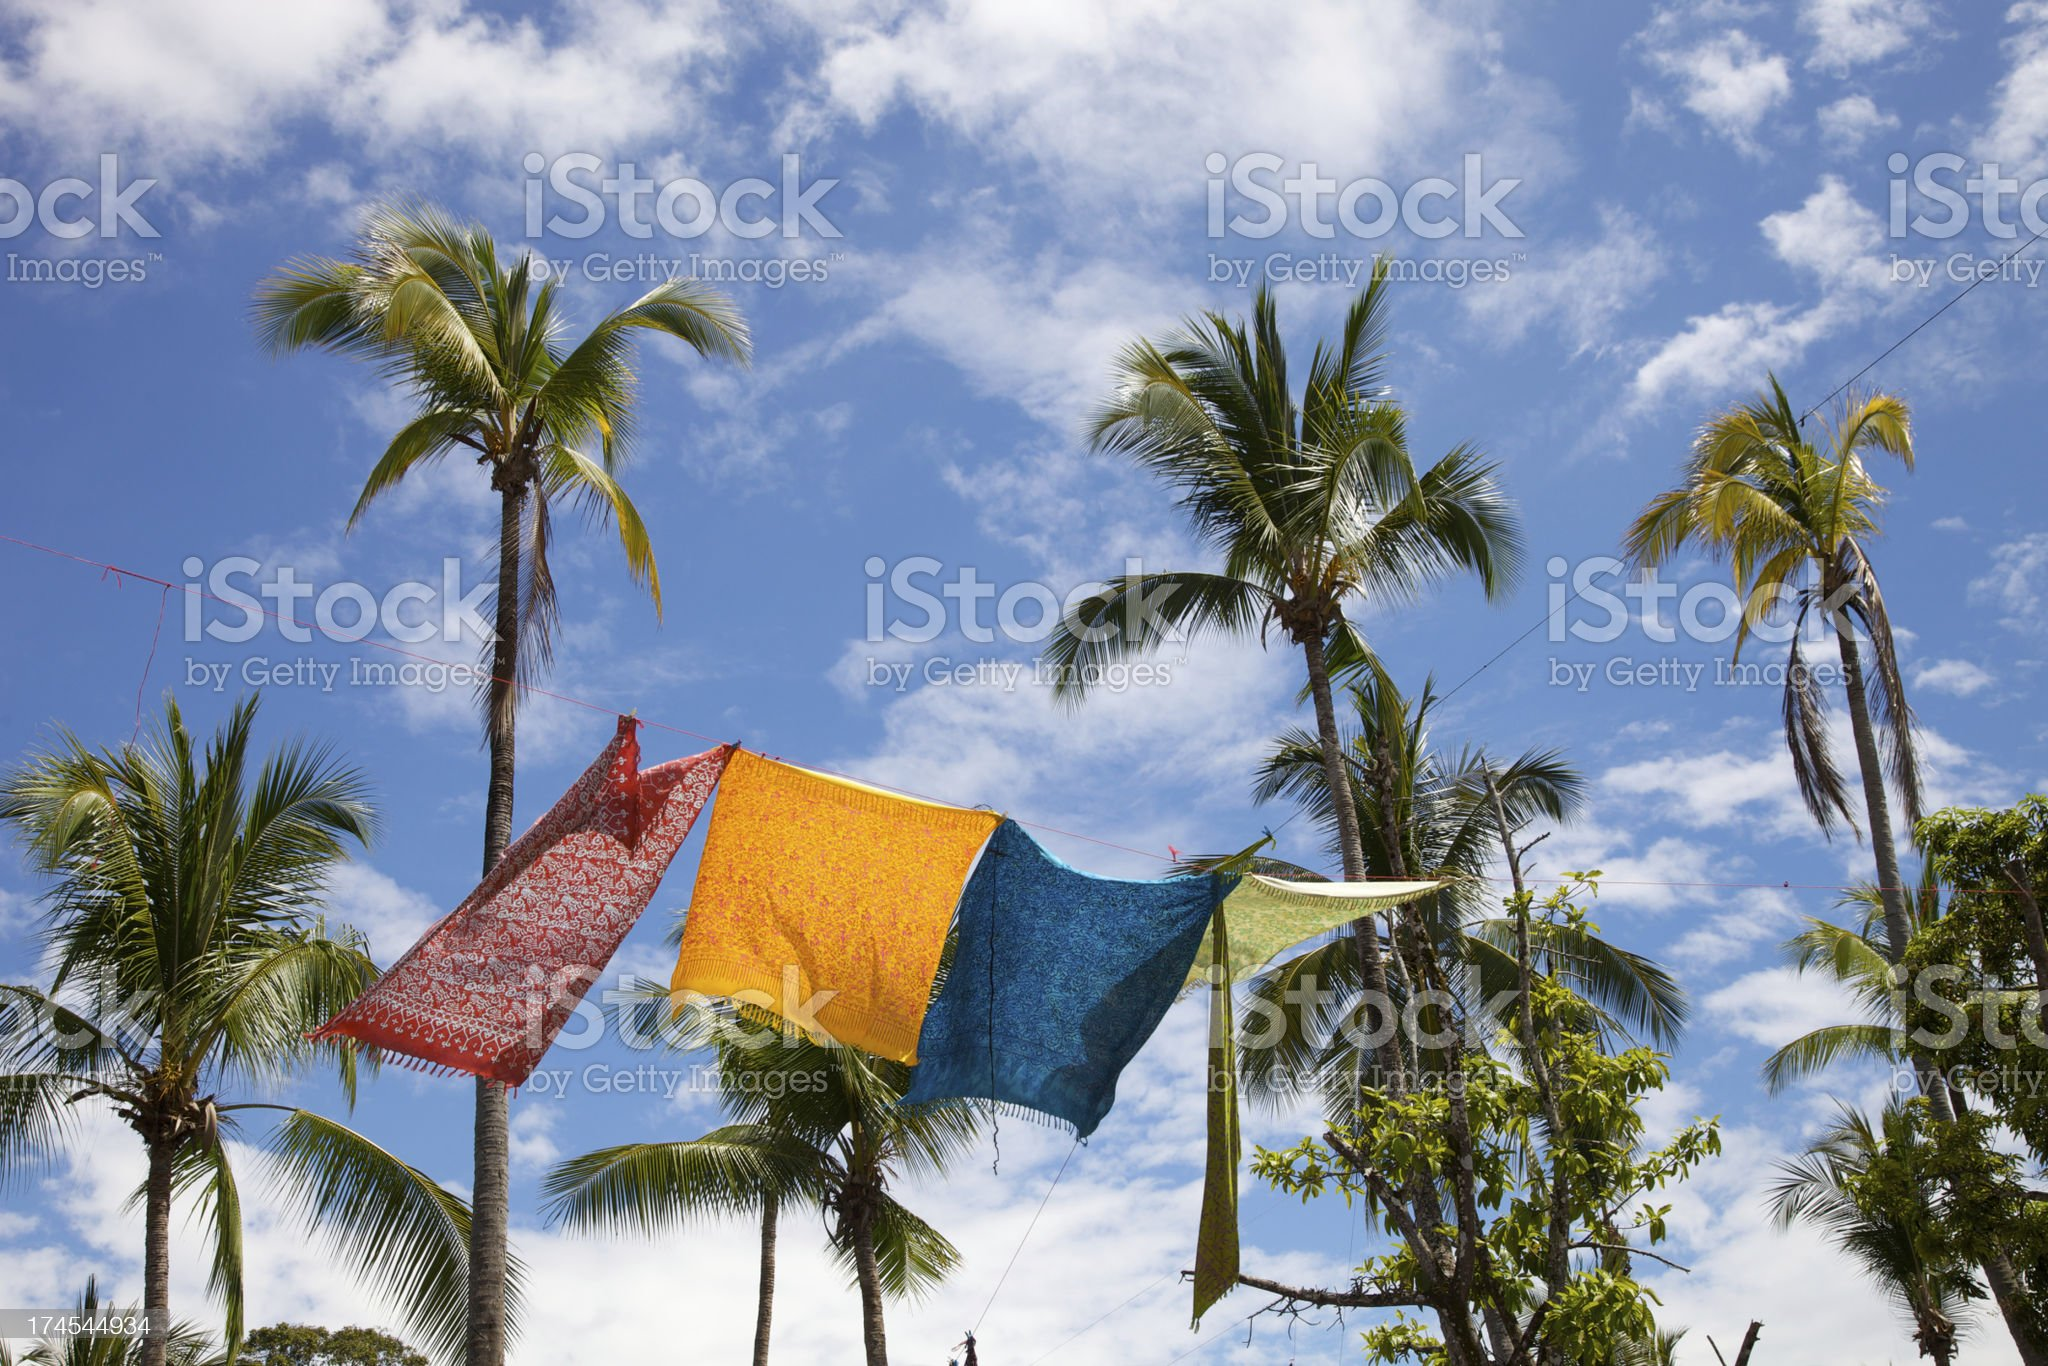 Tropical Fabrics in Breeze with Palms royalty-free stock photo